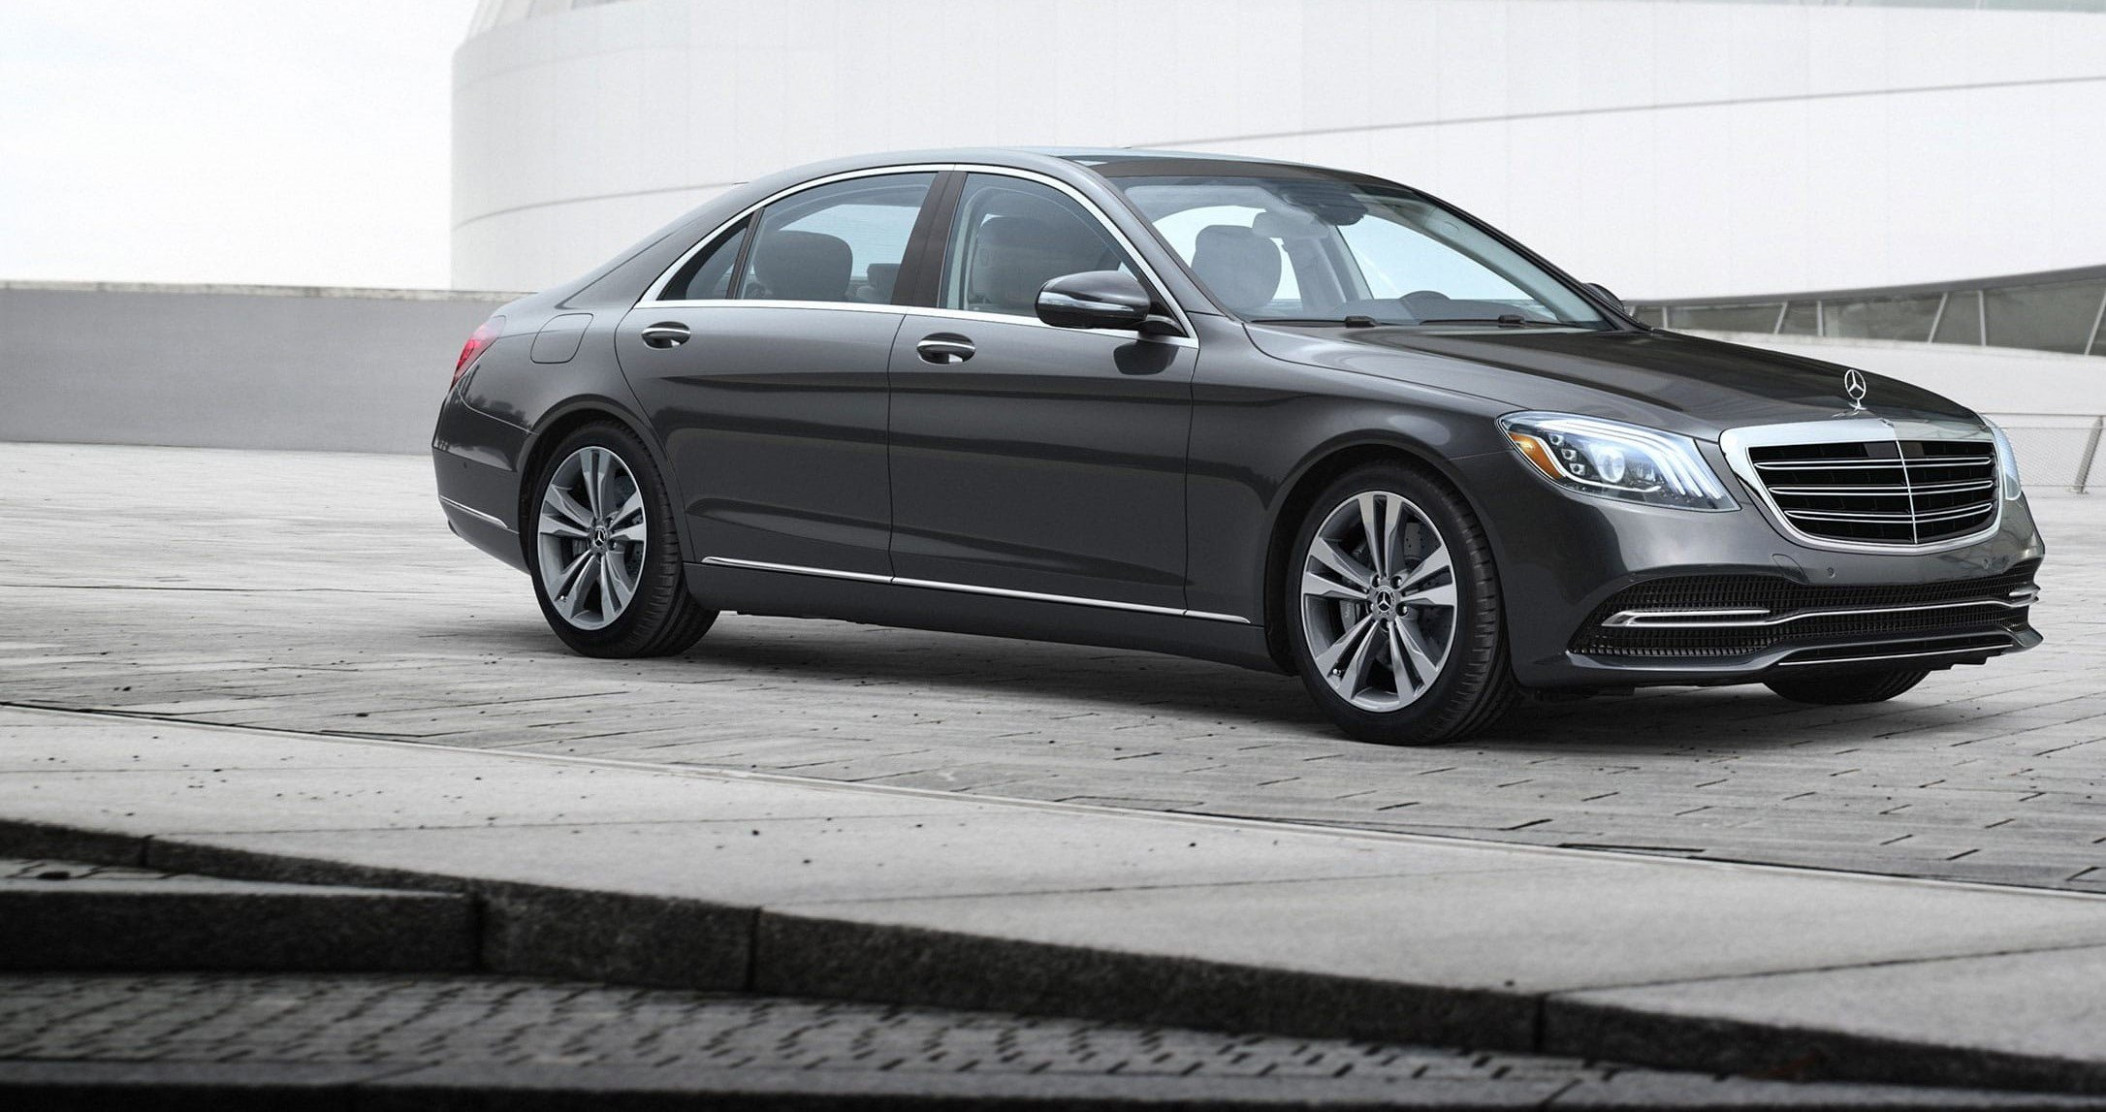 Mercedes-Benz S-Class Lease Price & Offers - Los Angeles CA - 2020 mercedes s550 price